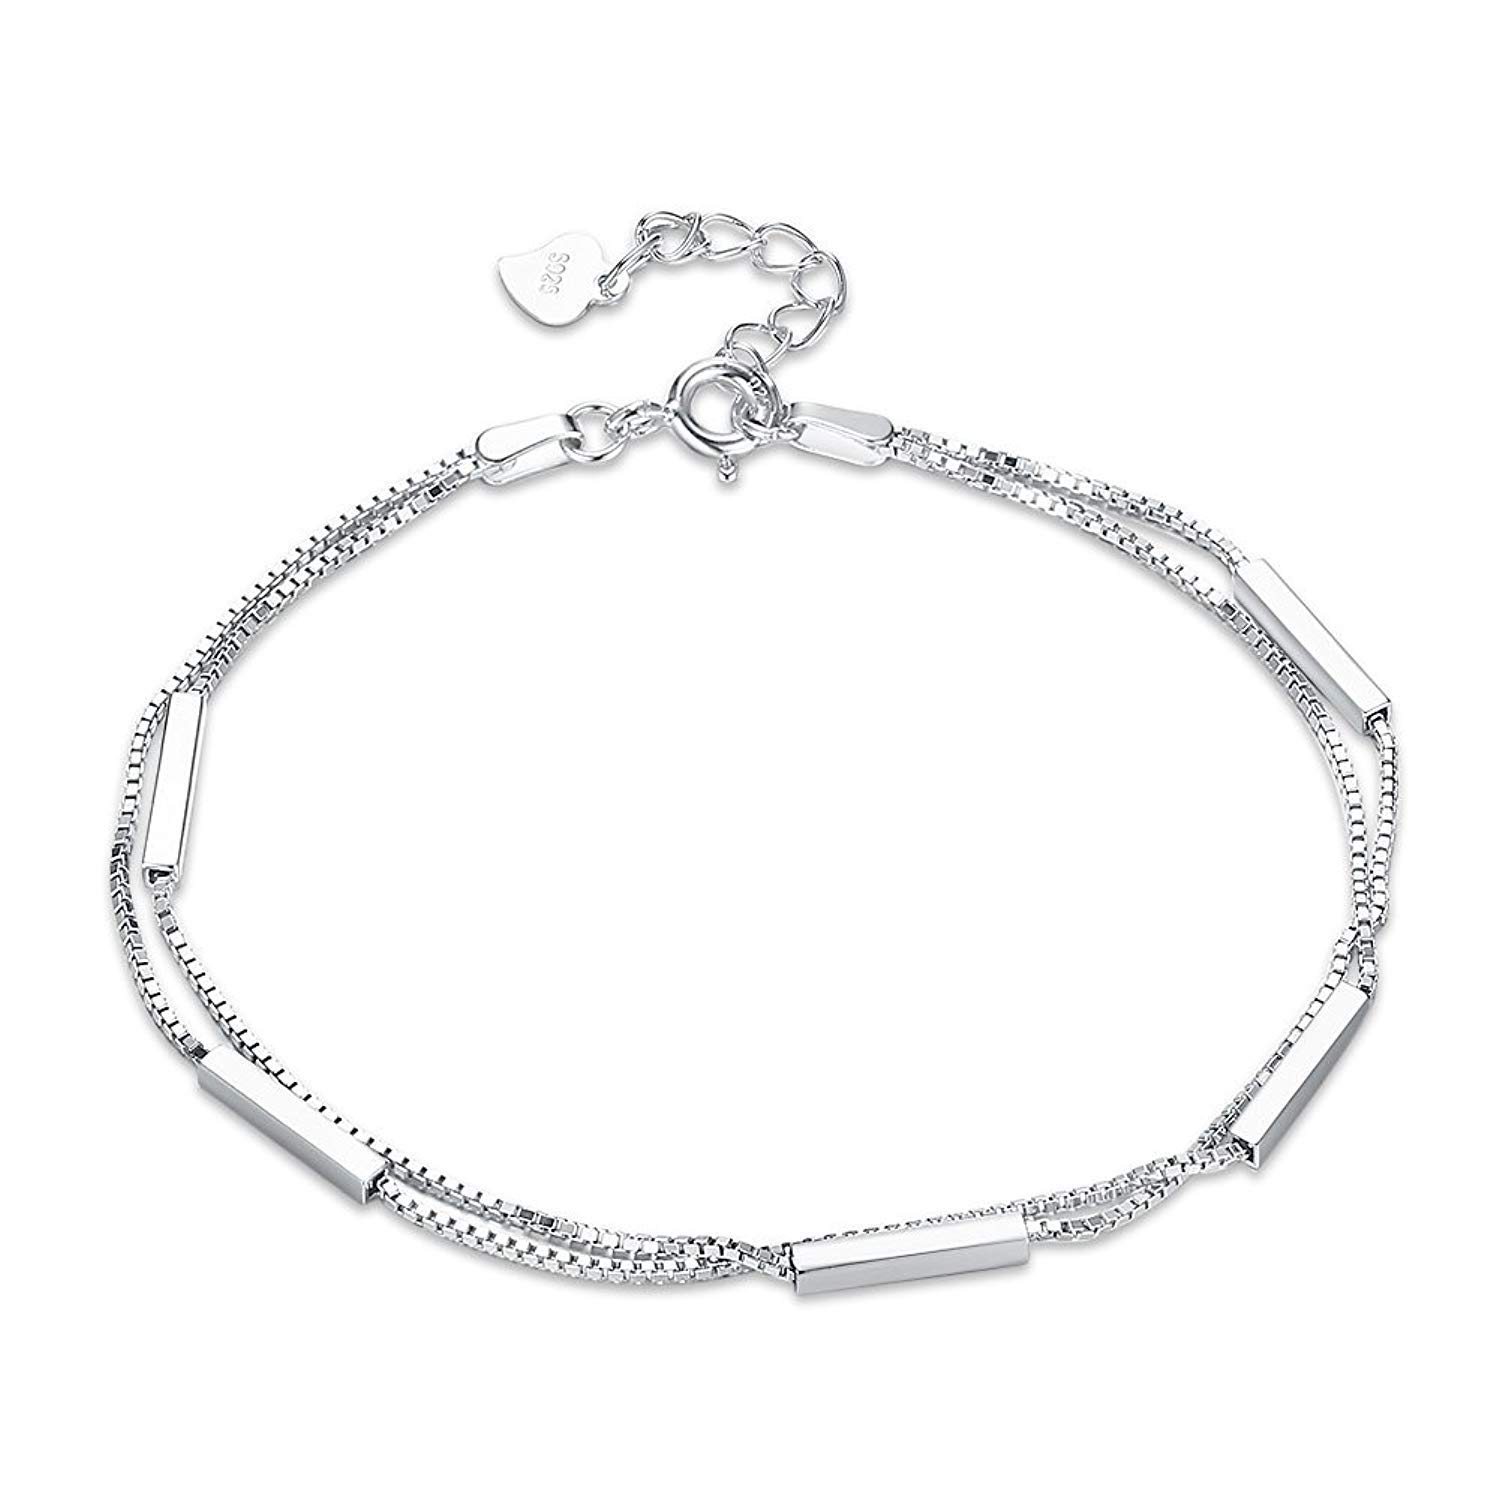 DVANIS 925 Sterling Silver Bracelet Double Thin Chain Fashion Simple Style Wedding Women